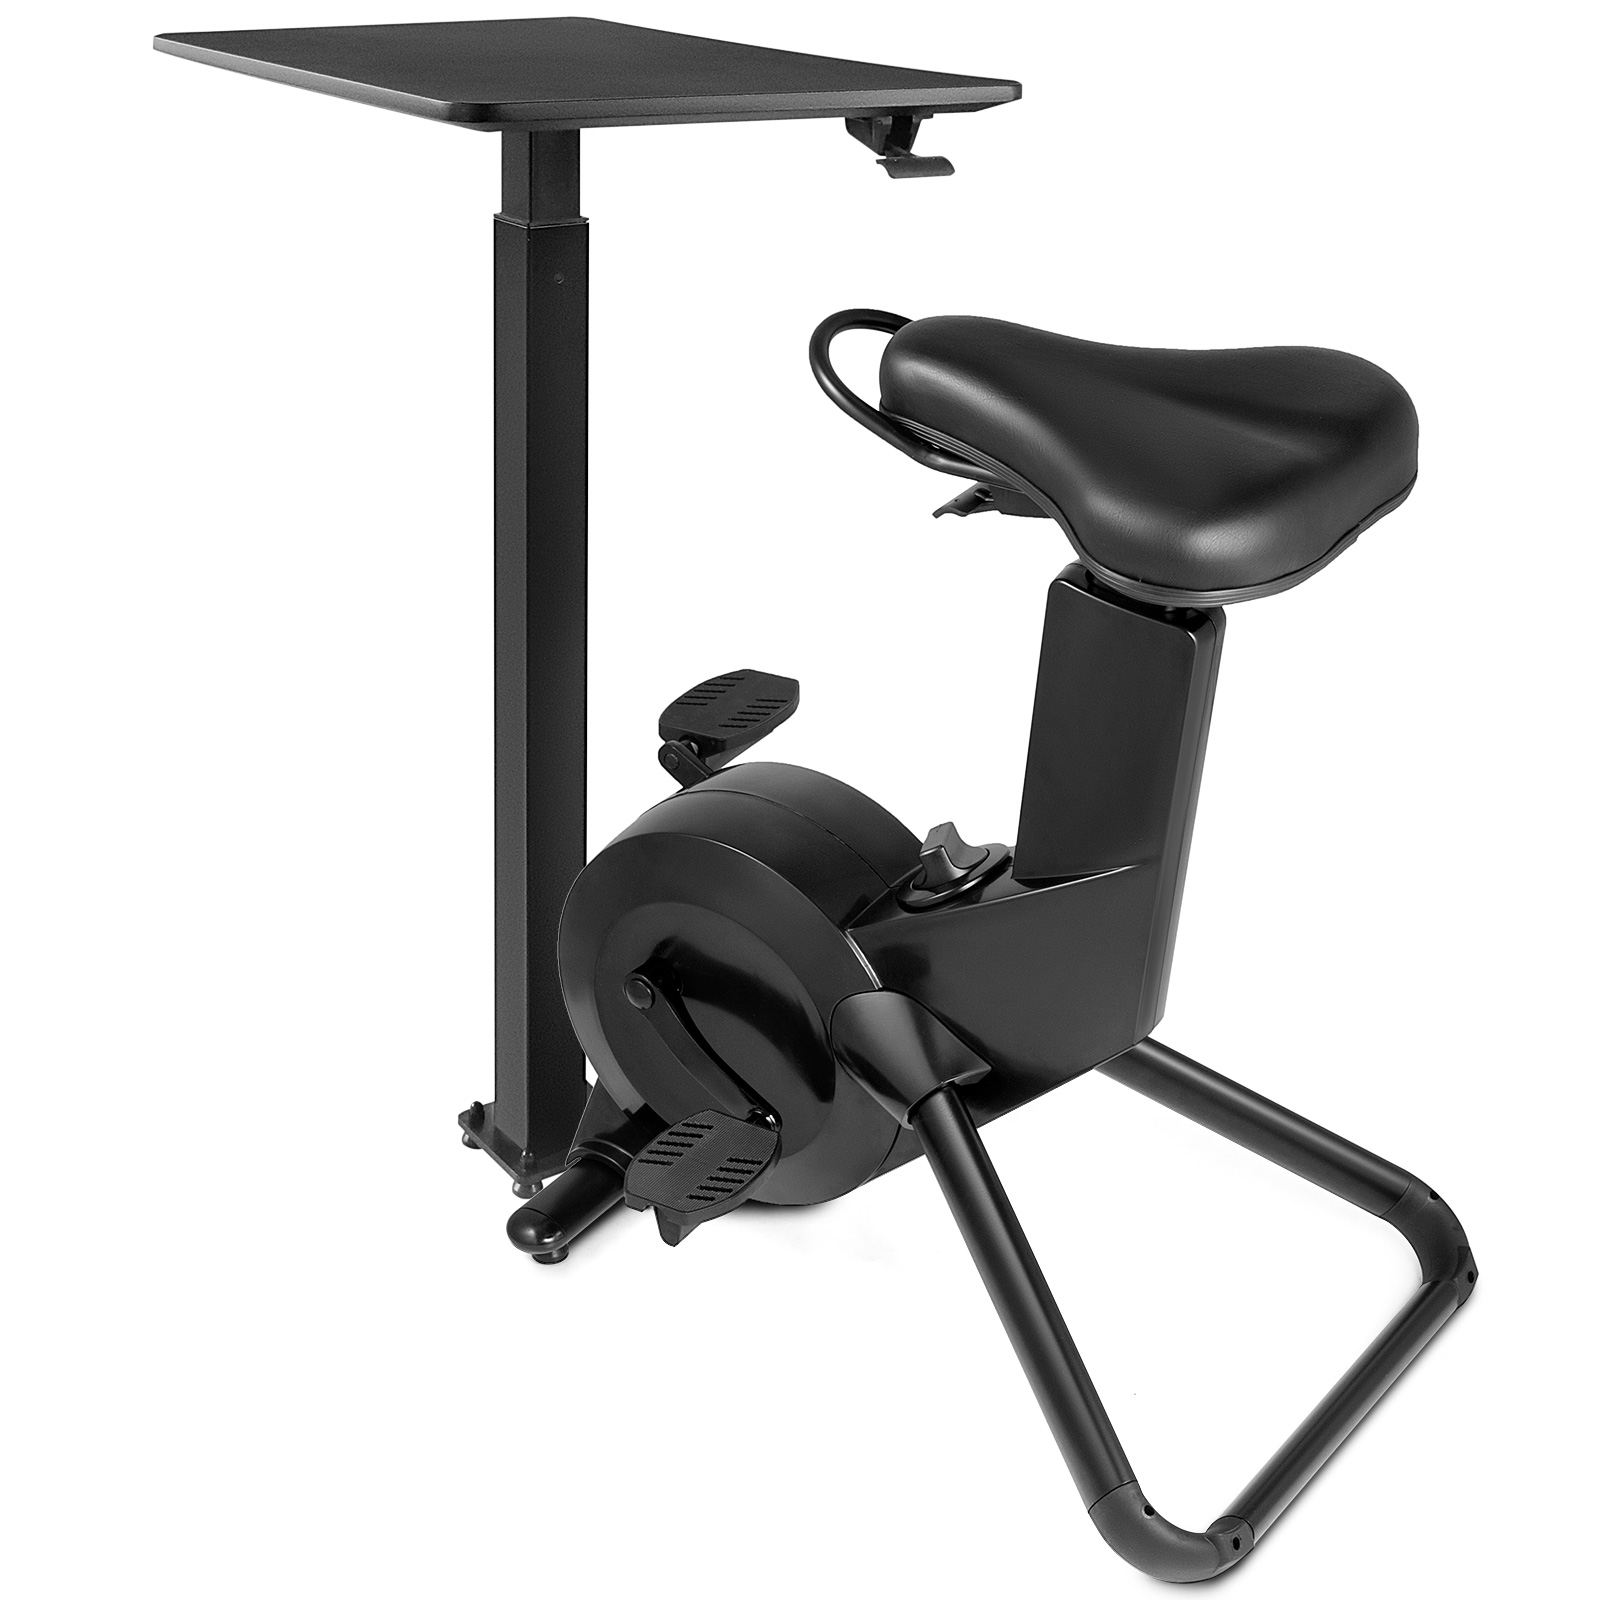 Multi-style-Magnetic-Exercise-Bike-office-Bicycle-under-Desk-Fitness-Cardio miniature 132